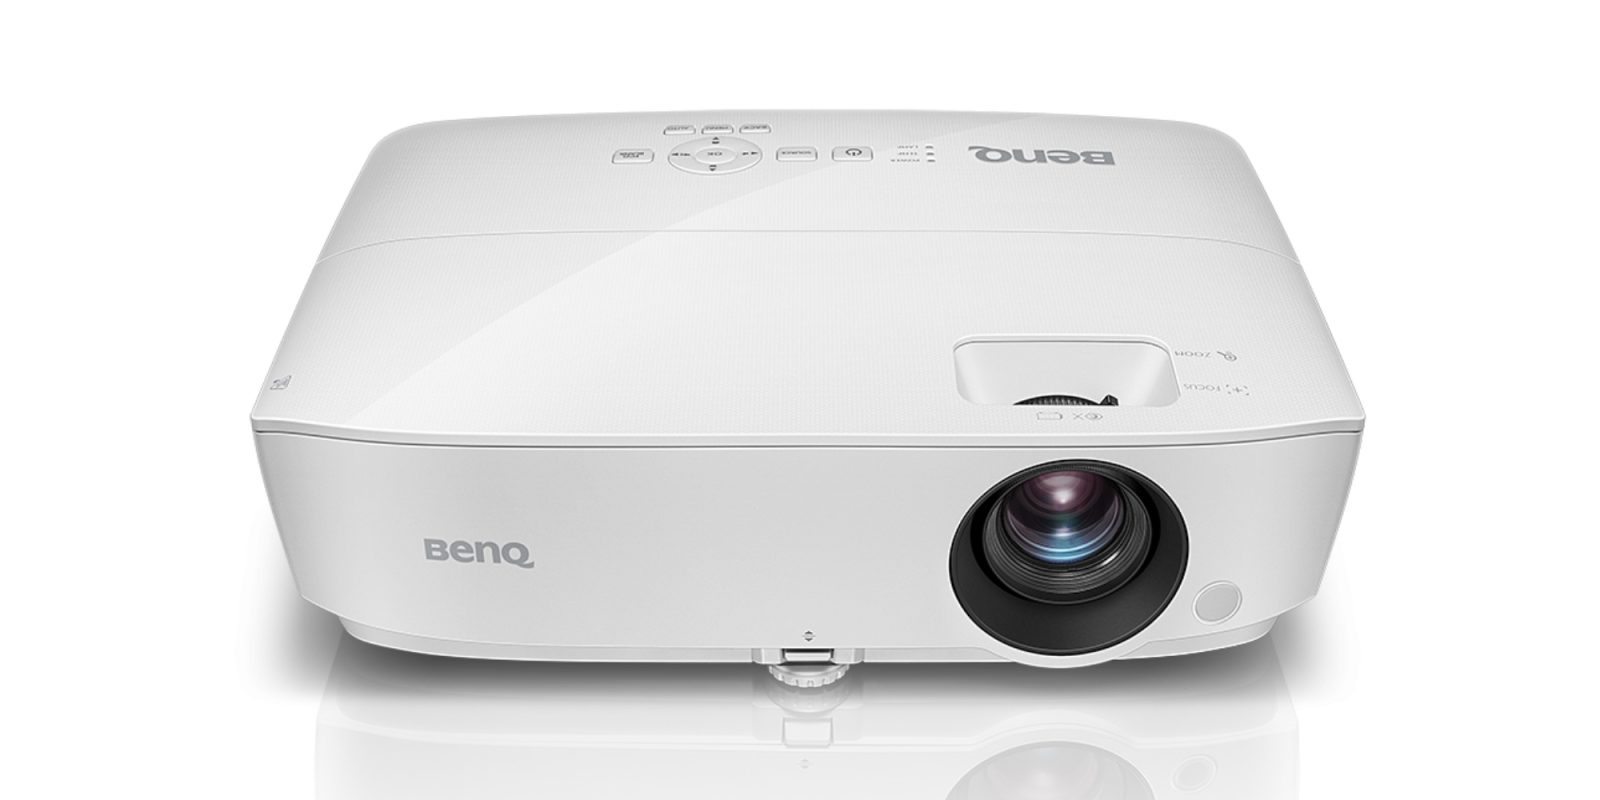 Score BenQ's 1080P Home Theater Projector at an all-time low: $452.50 ($96 off)